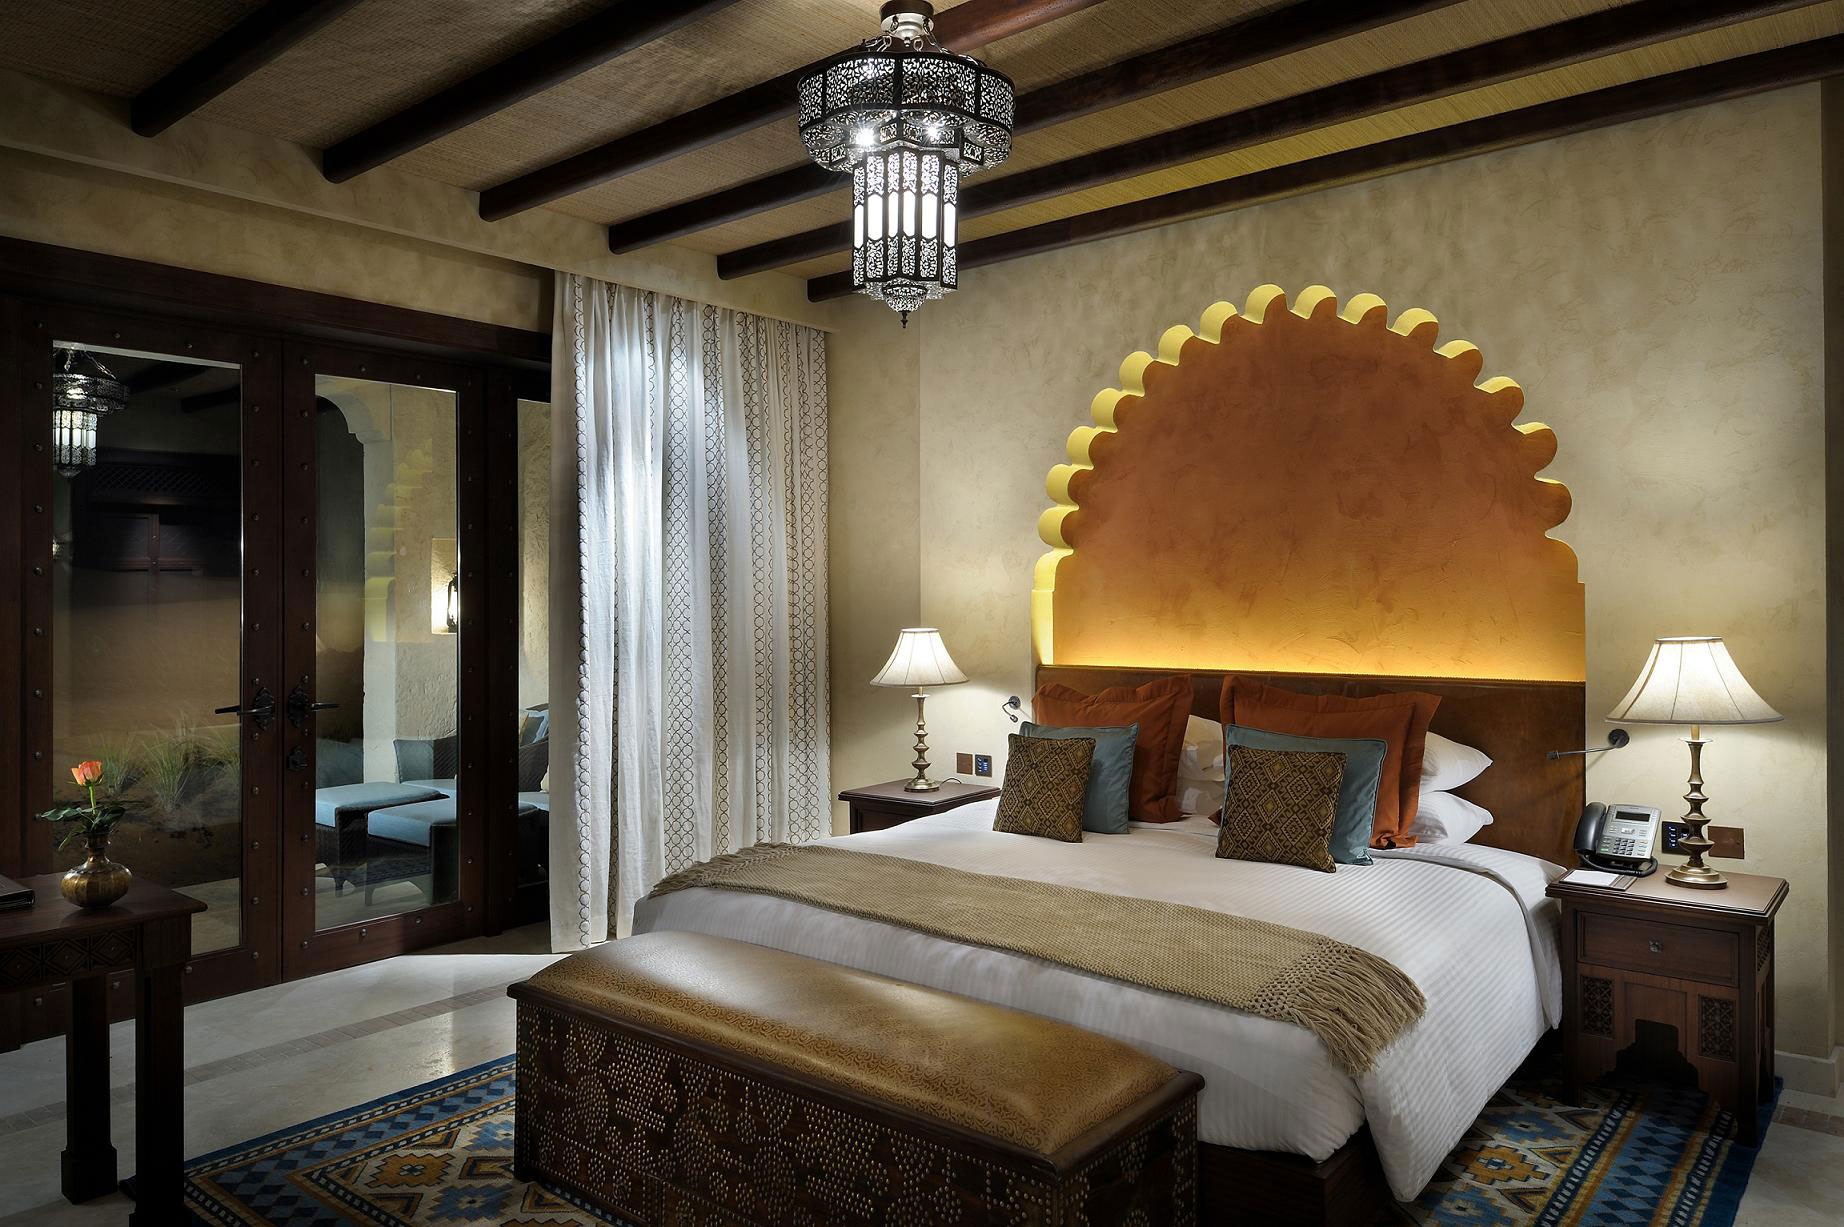 Arabic Bedroom Design Enchanting Arabic Interior Design Decor Ideas And Photos Review